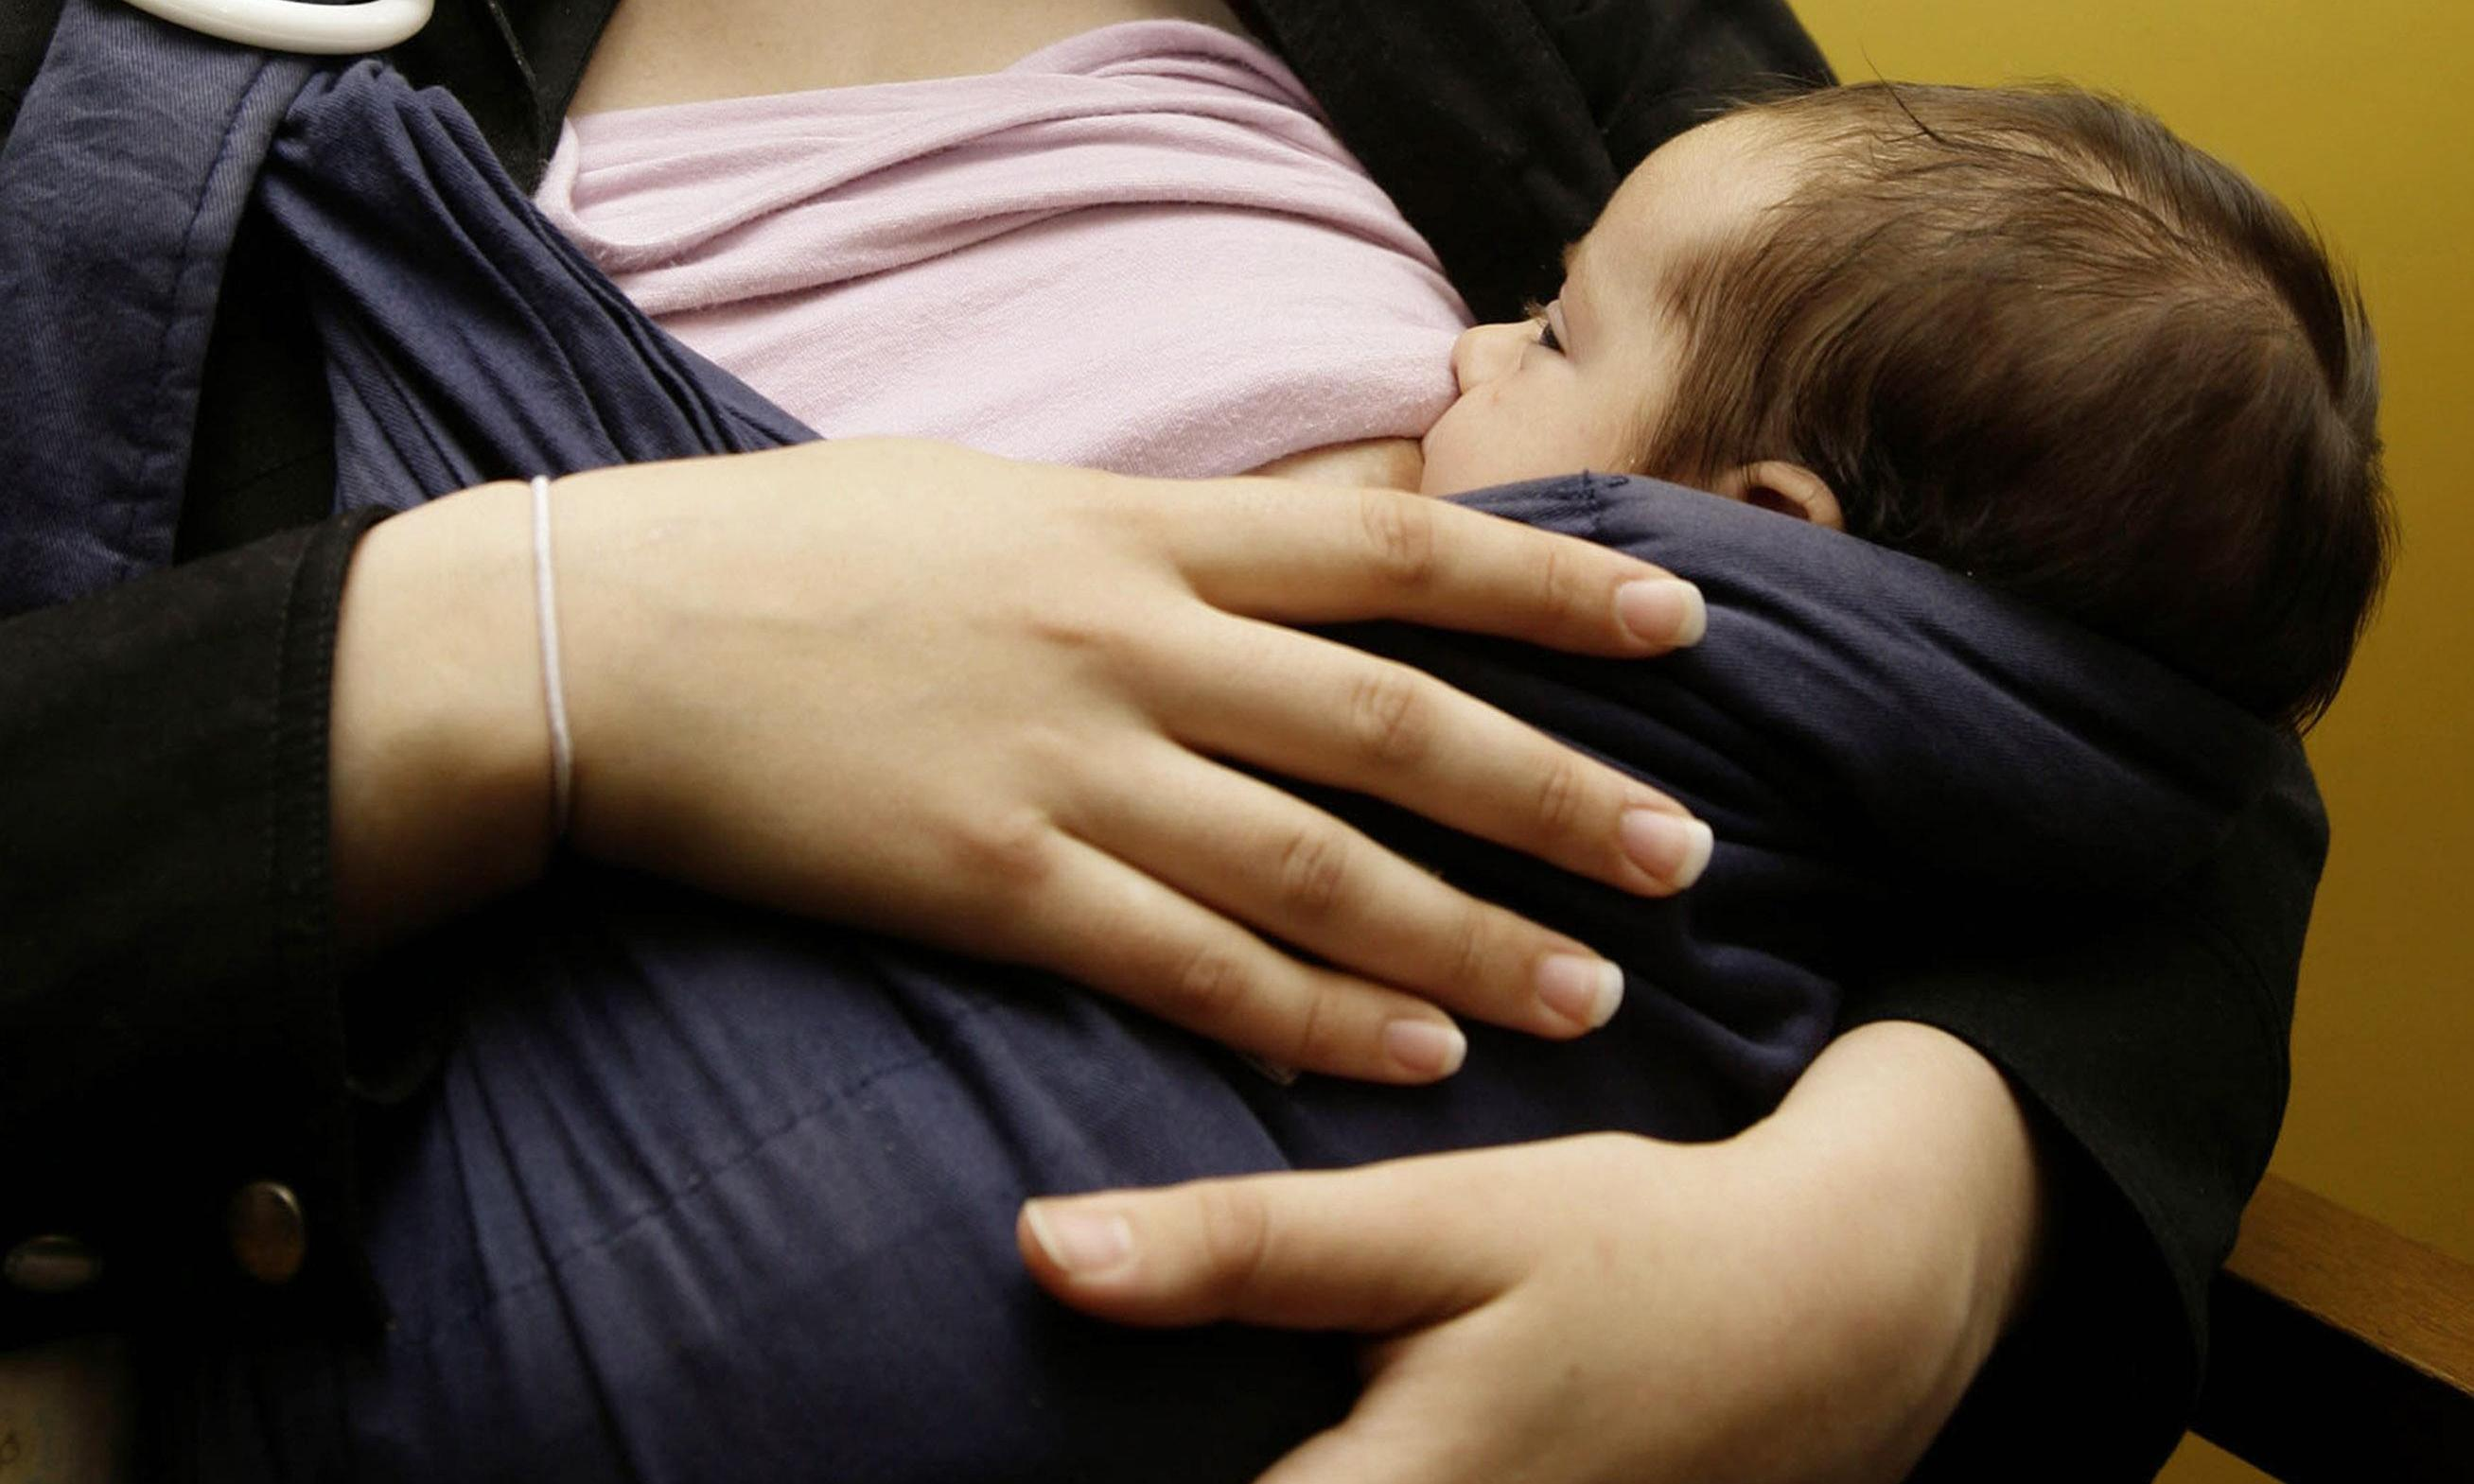 Transgender woman able to breastfeed in first documented case